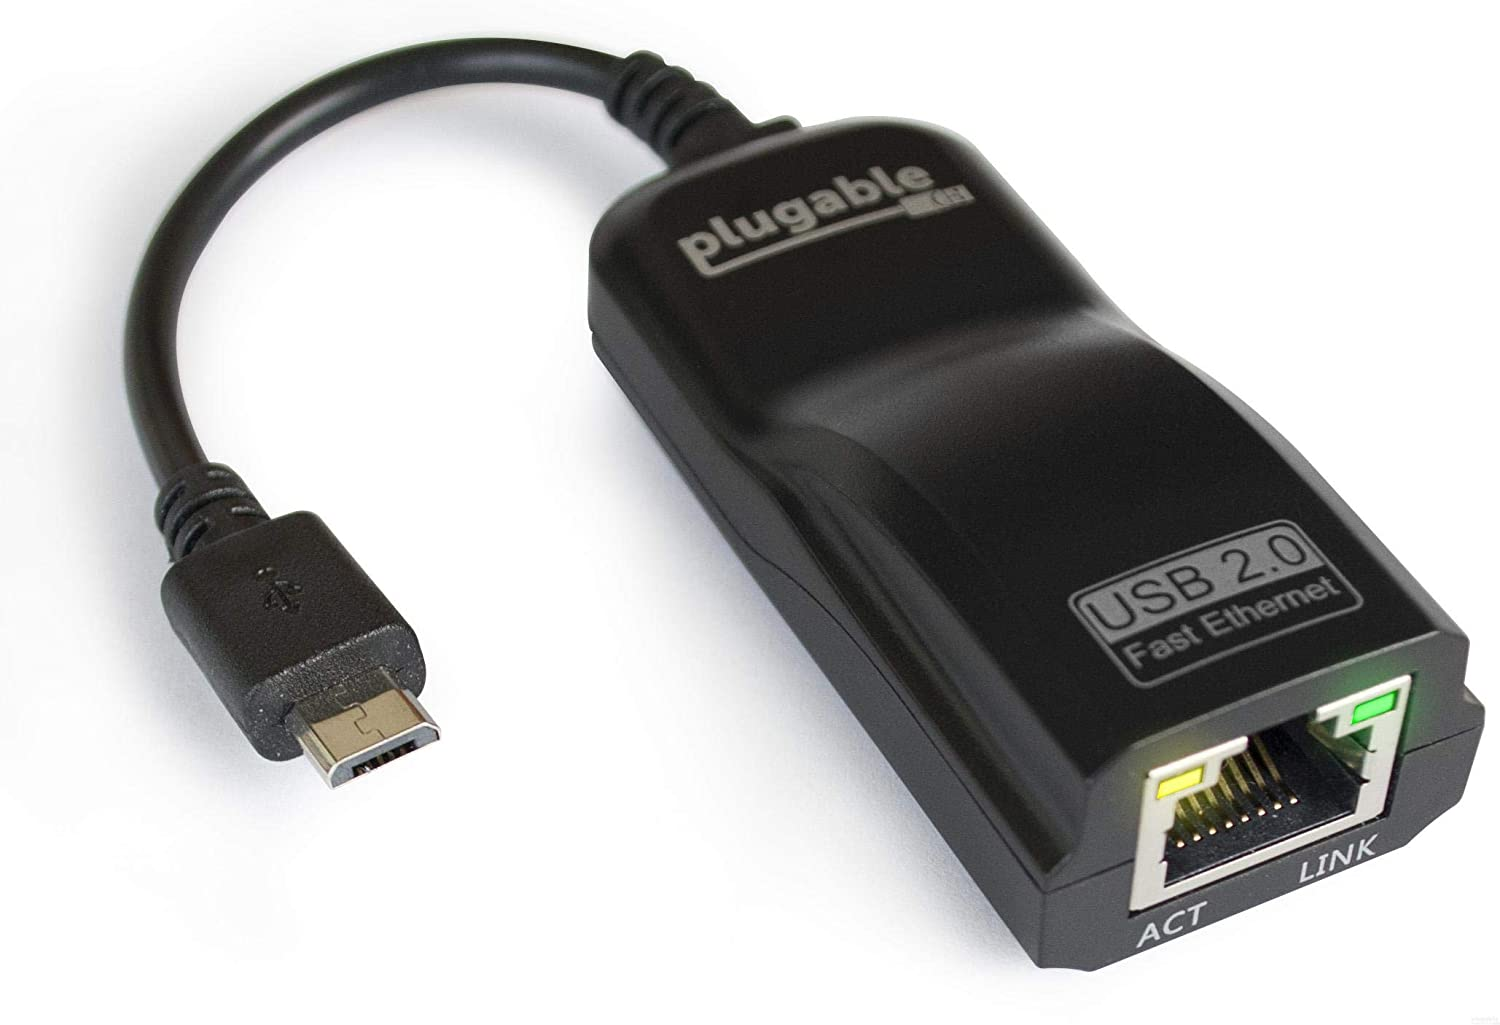 Amazon Com Plugable Usb 2 0 Otg Micro B To 100mbps Fast Ethernet Adapter Compatible With Windows Tablets Raspberry Pi Zero And Some Android Devices Asix Ax88772a Chipset Computers Accessories